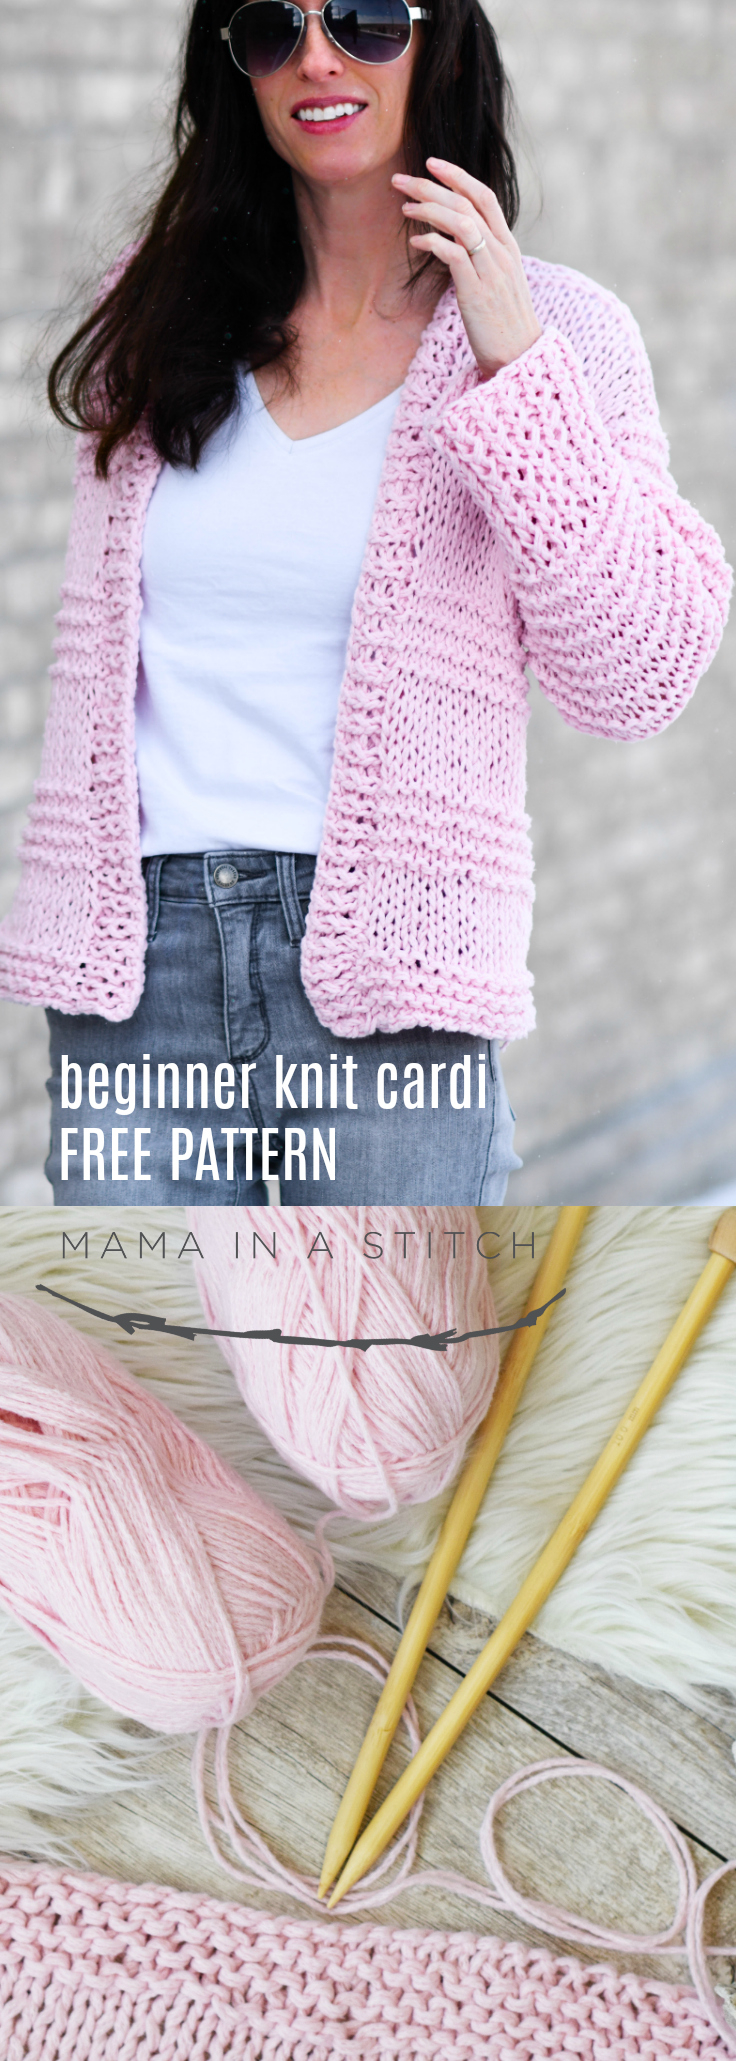 Free Knitting Pattern Sweater Cotton Candy Easy Knit Cardigan Pattern Mama In A Stitch